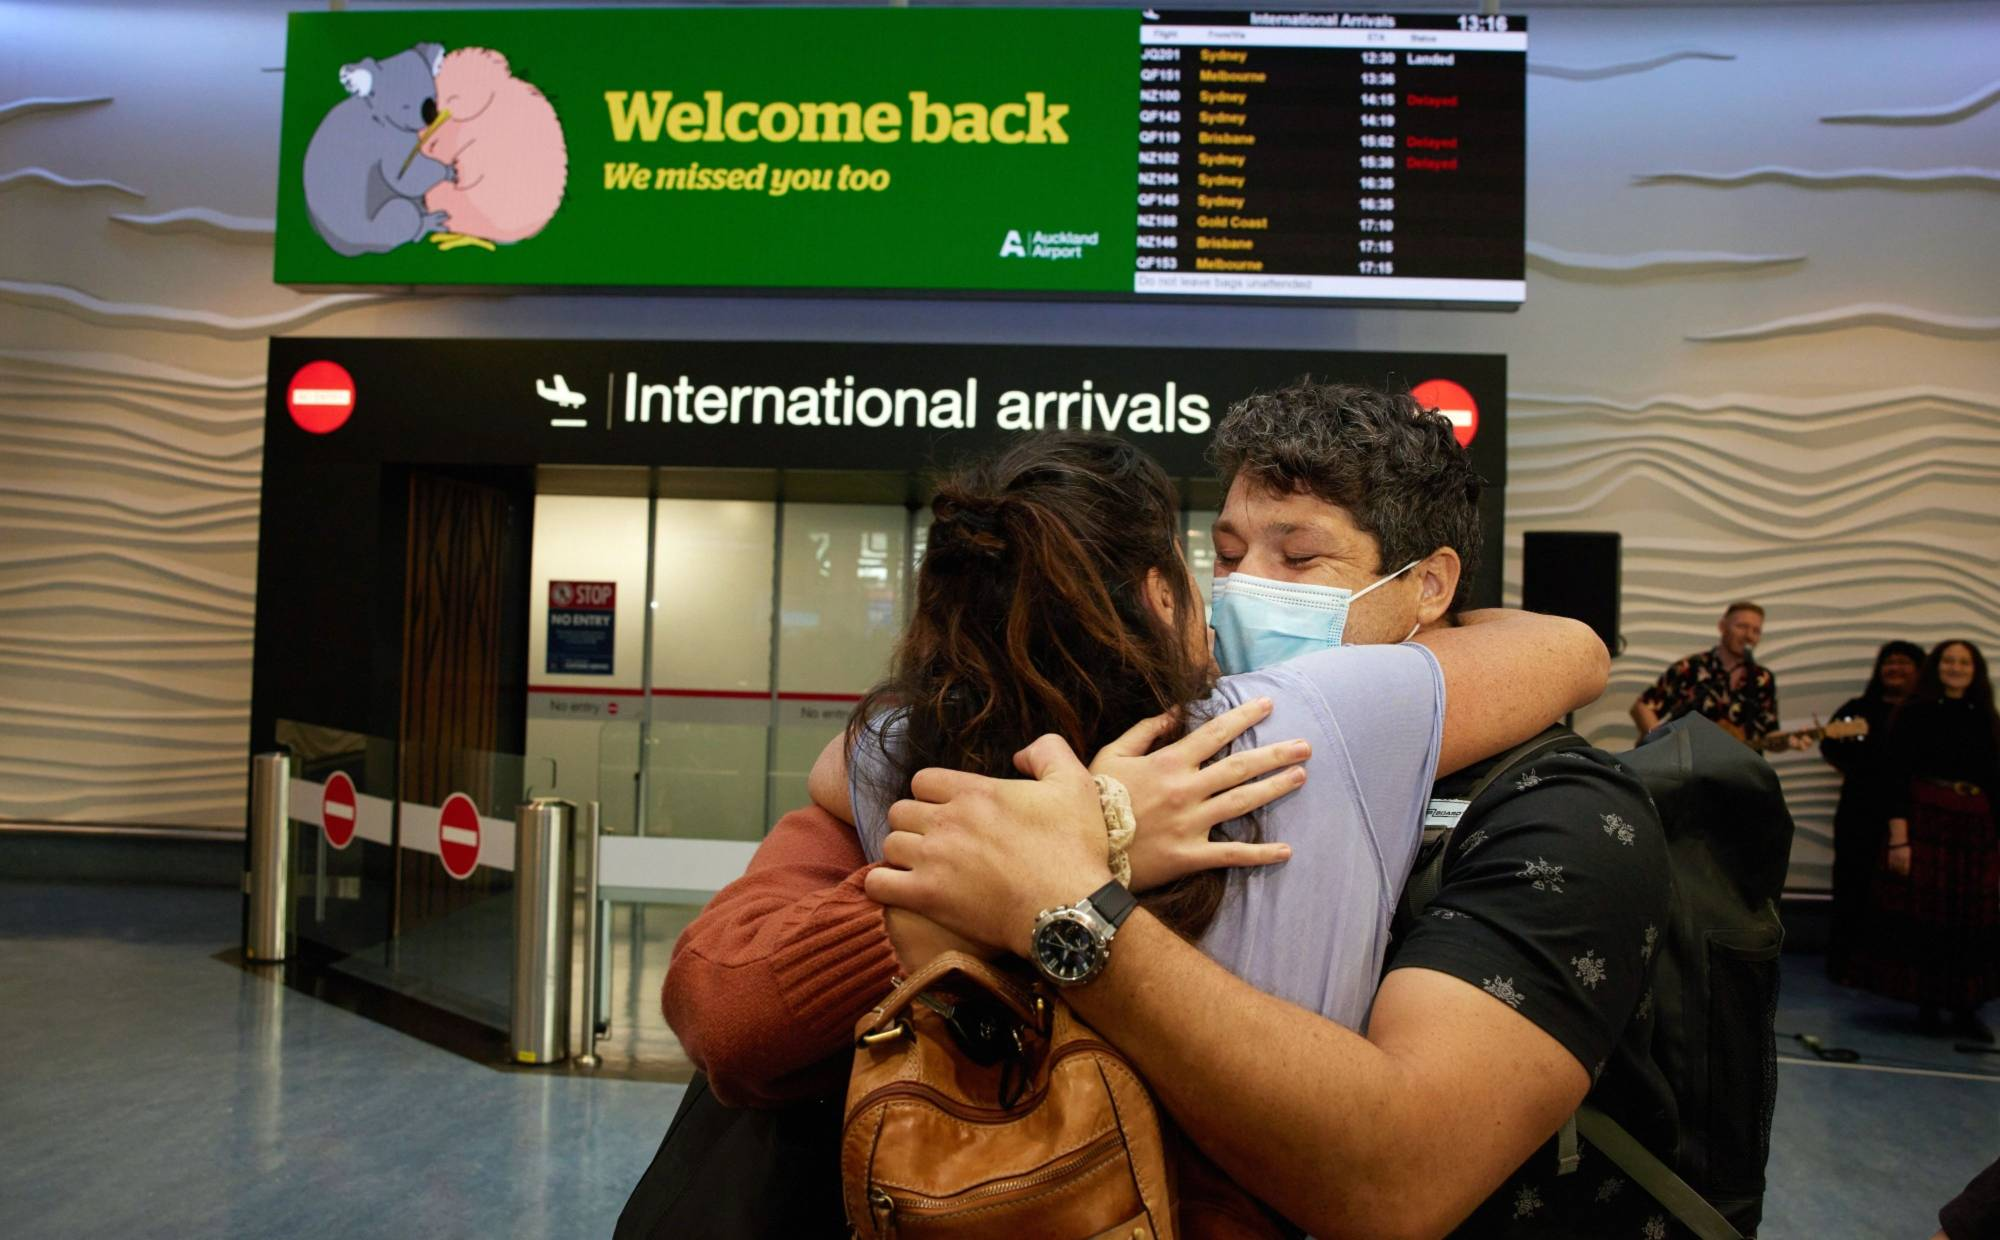 People embrace as they are reunited at Auckland International Airport on April 19.  | BLOOMBERG